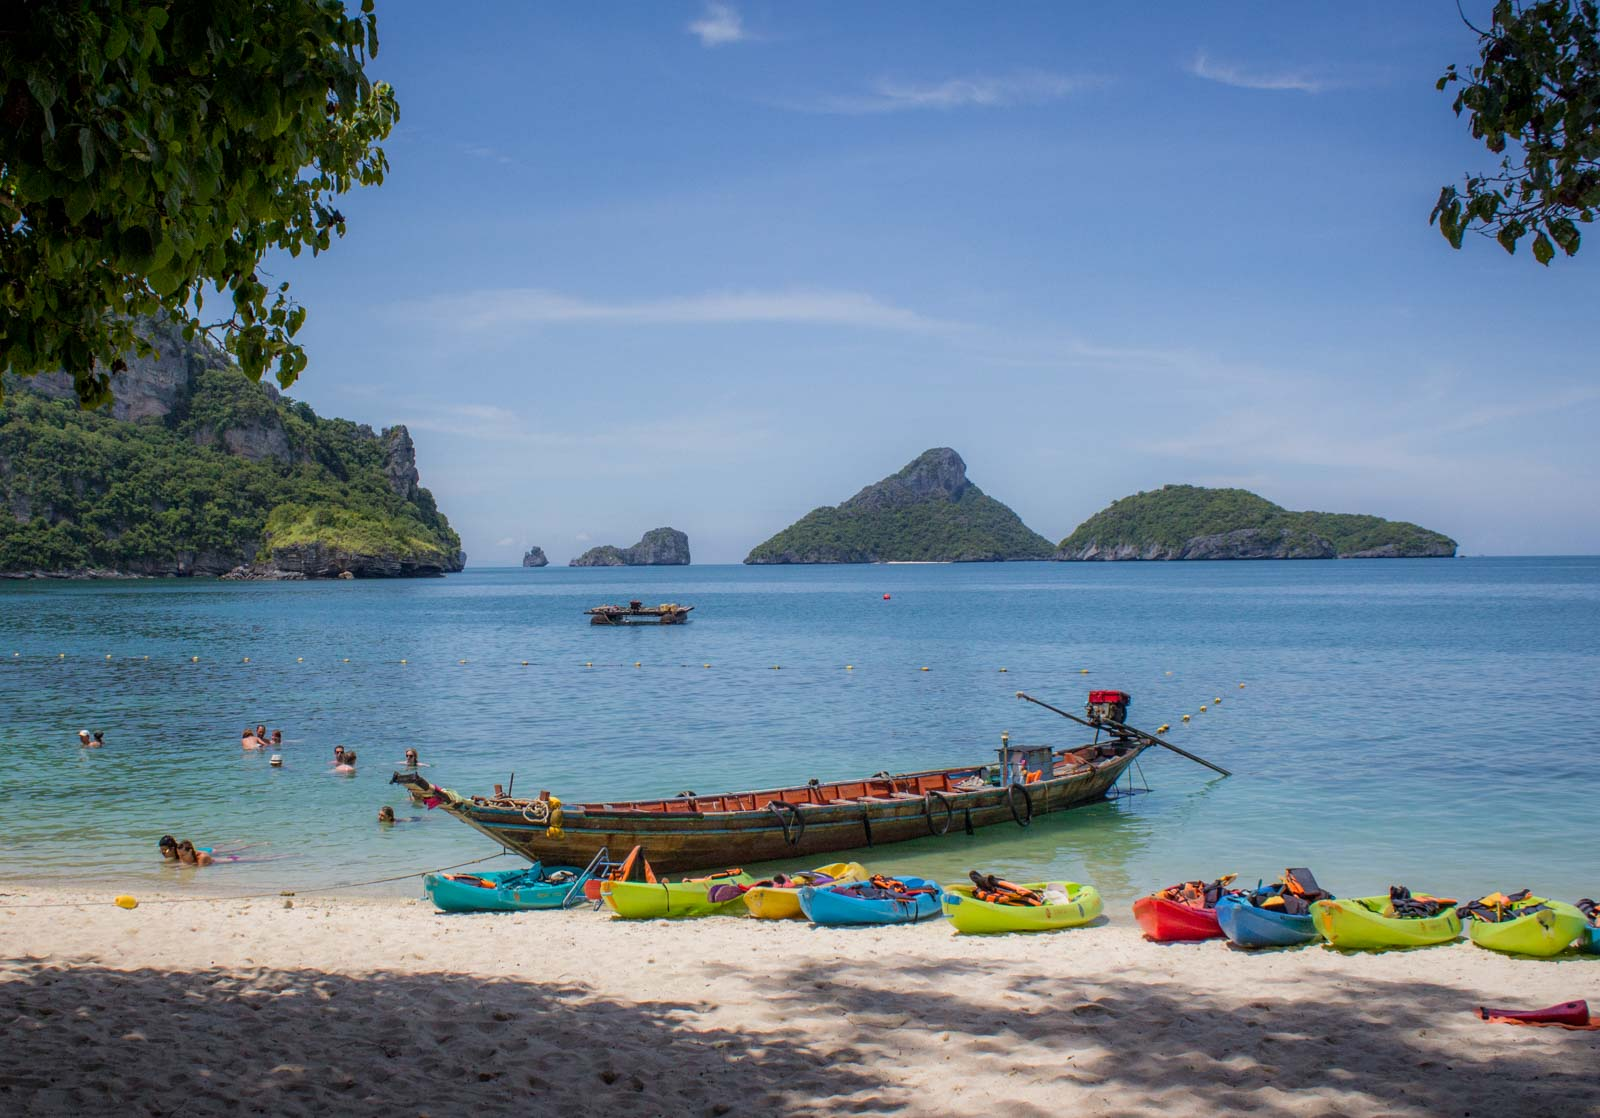 Finding The Beach from the movie from Koh Samui, Thailand